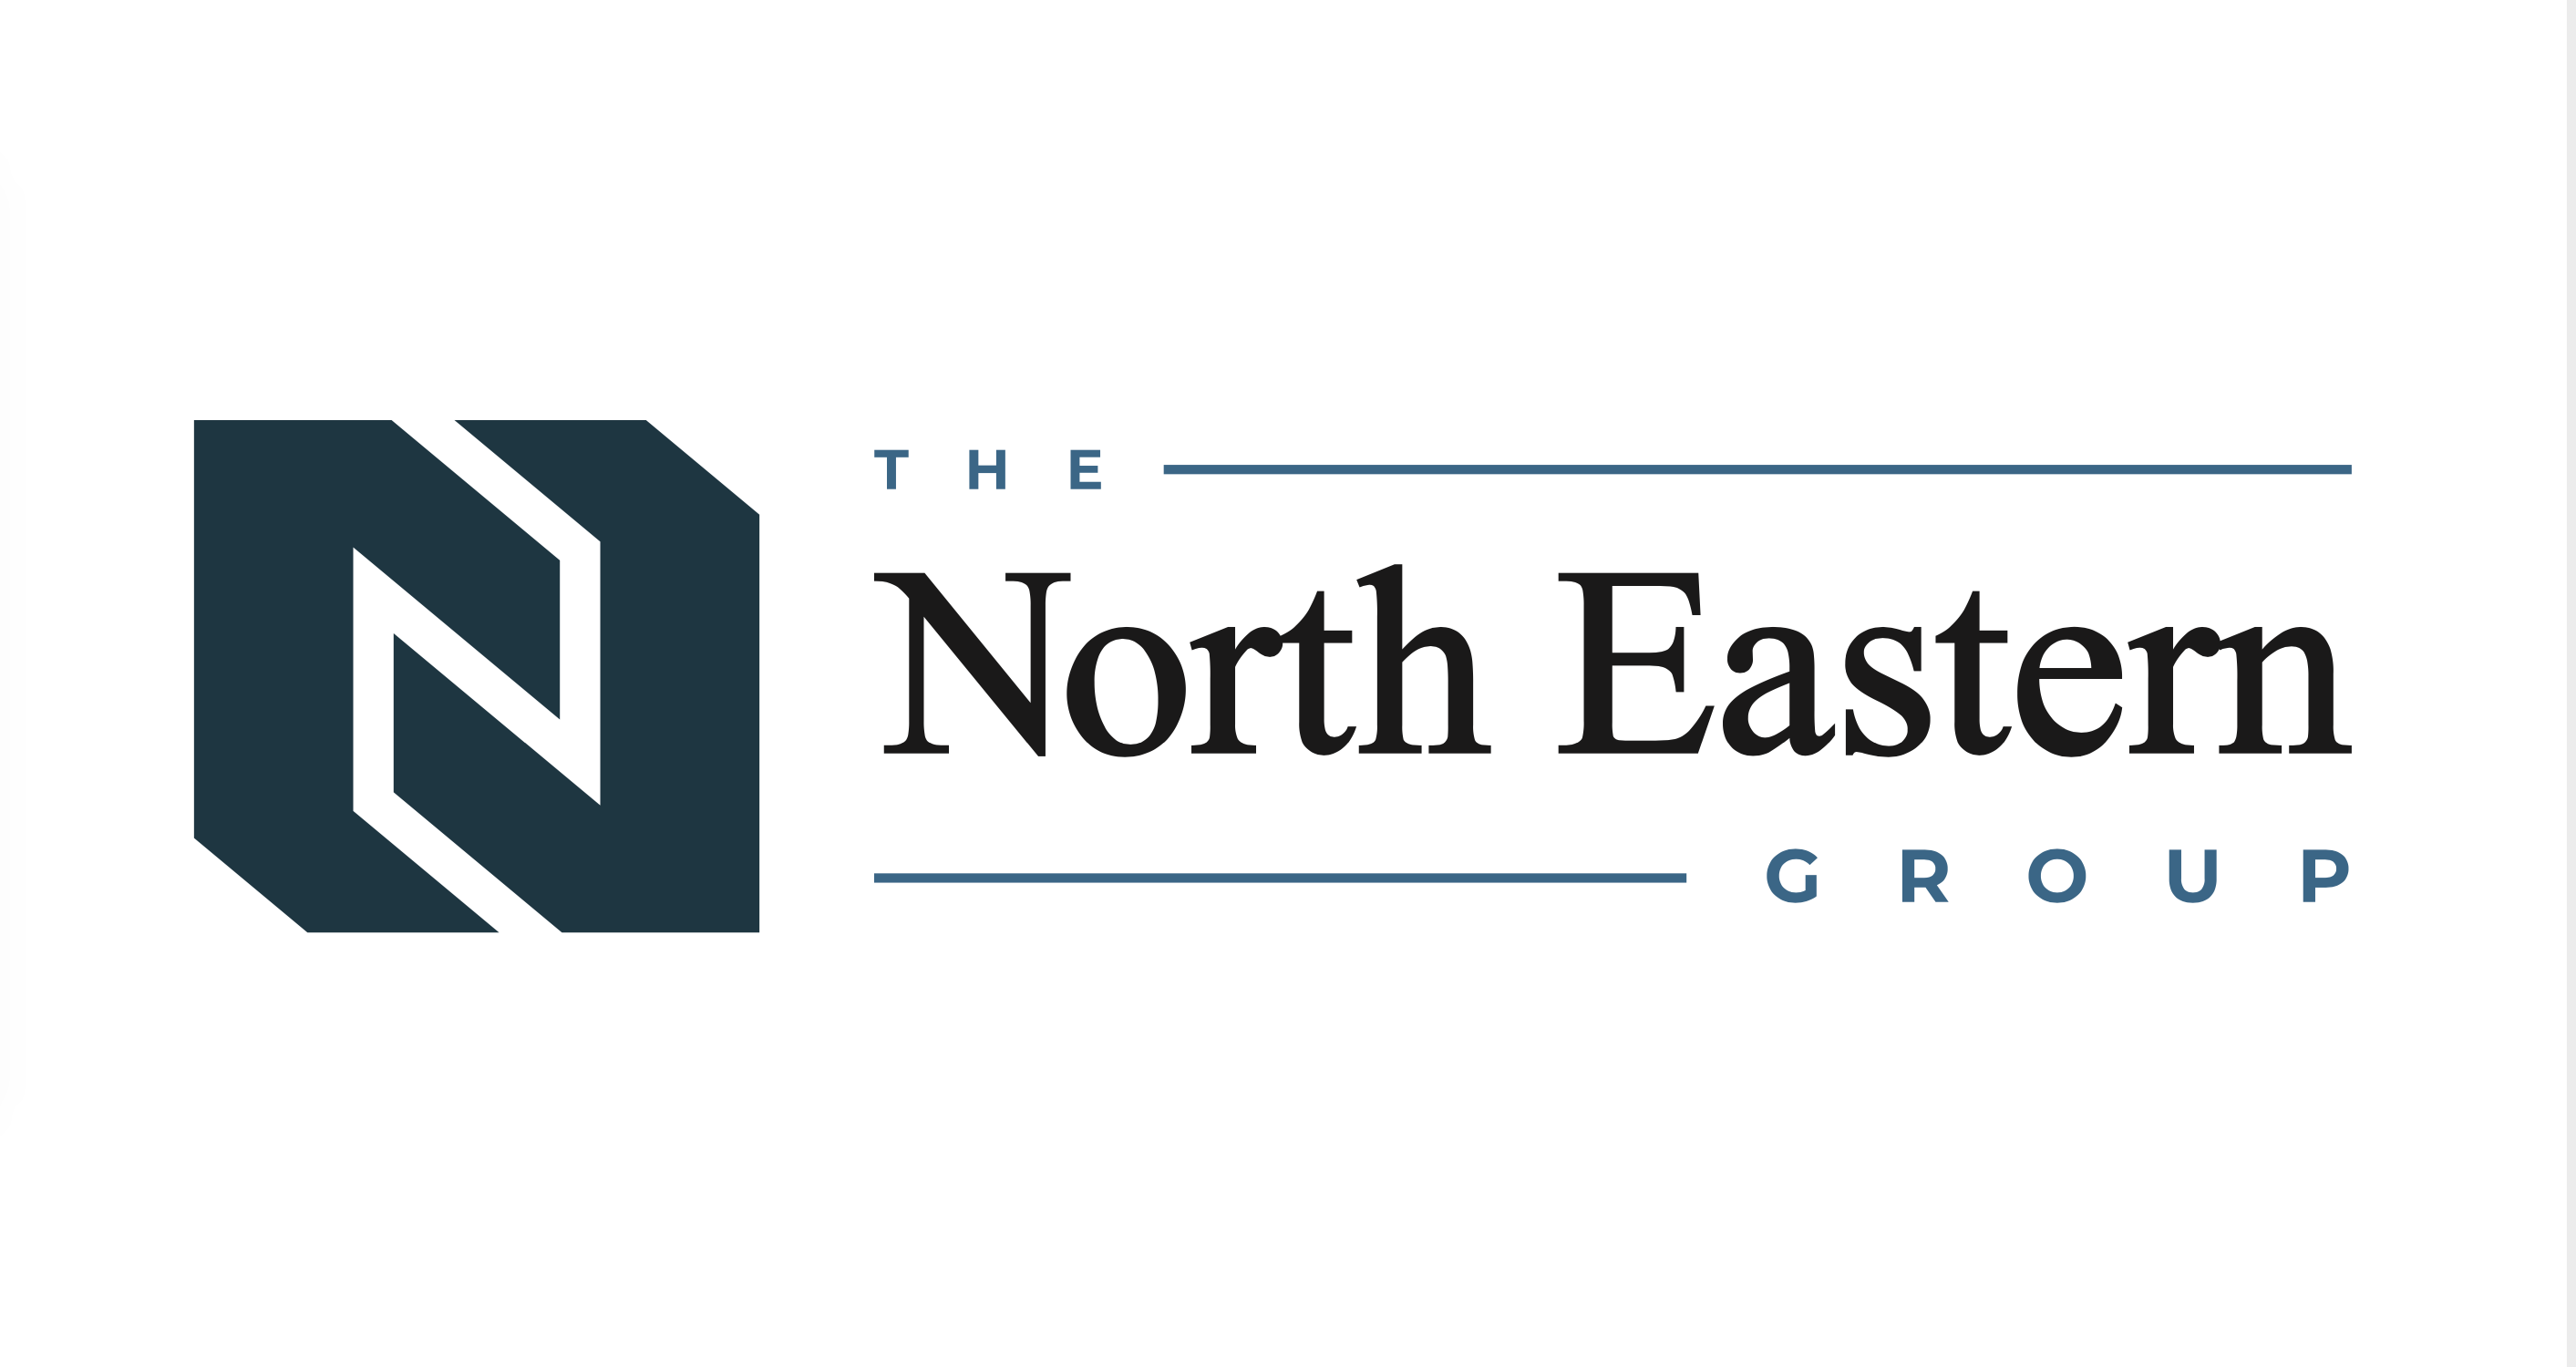 The North Eastern Group logo.